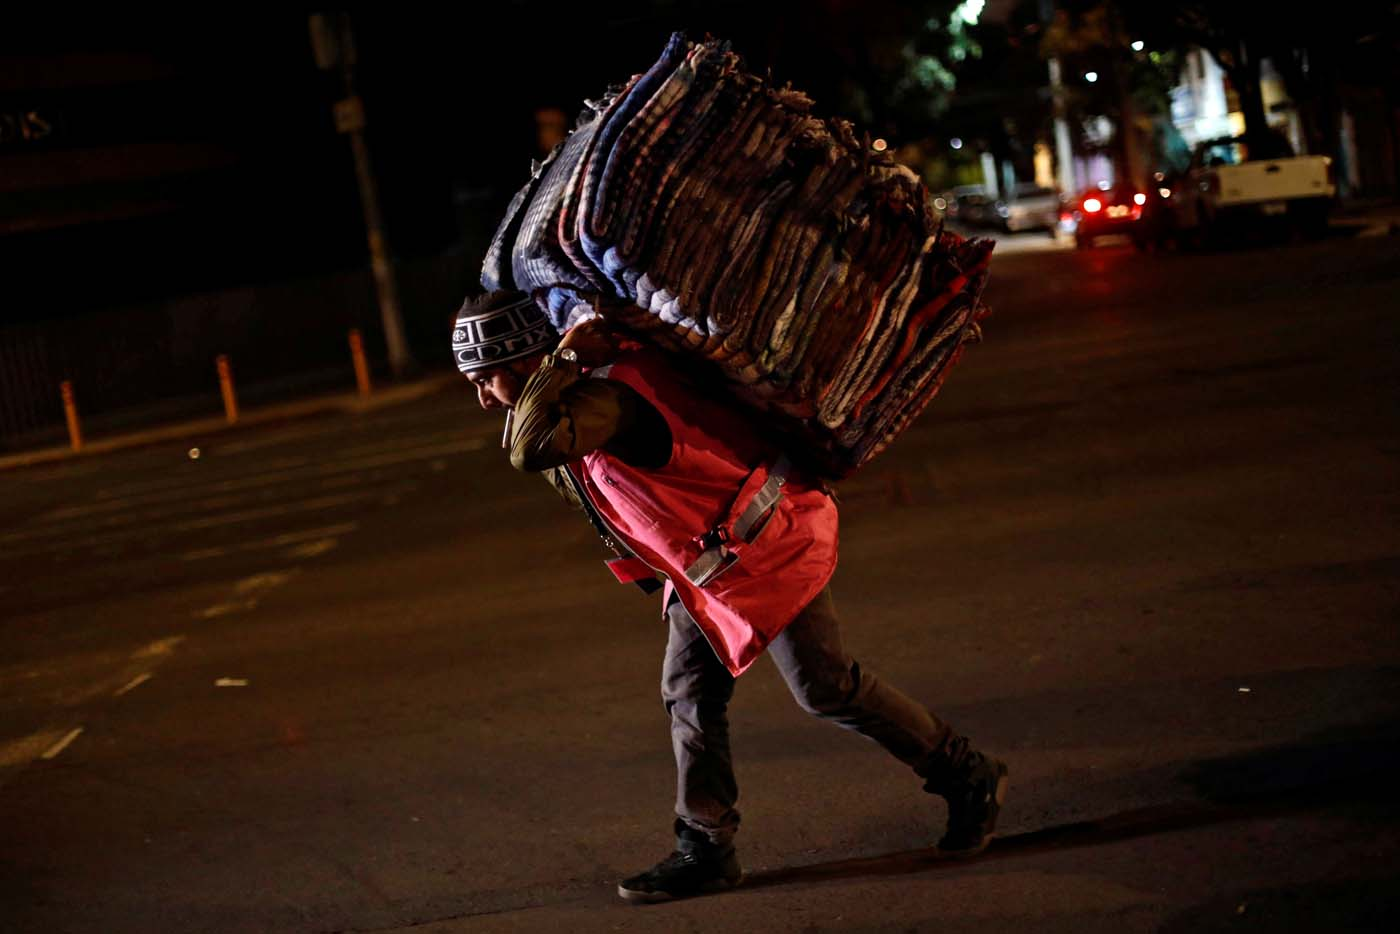 A volunteer carries blankets after an earthquake hit Mexico City, Mexico, September 8, 2017. REUTERS/Edgard Garrido